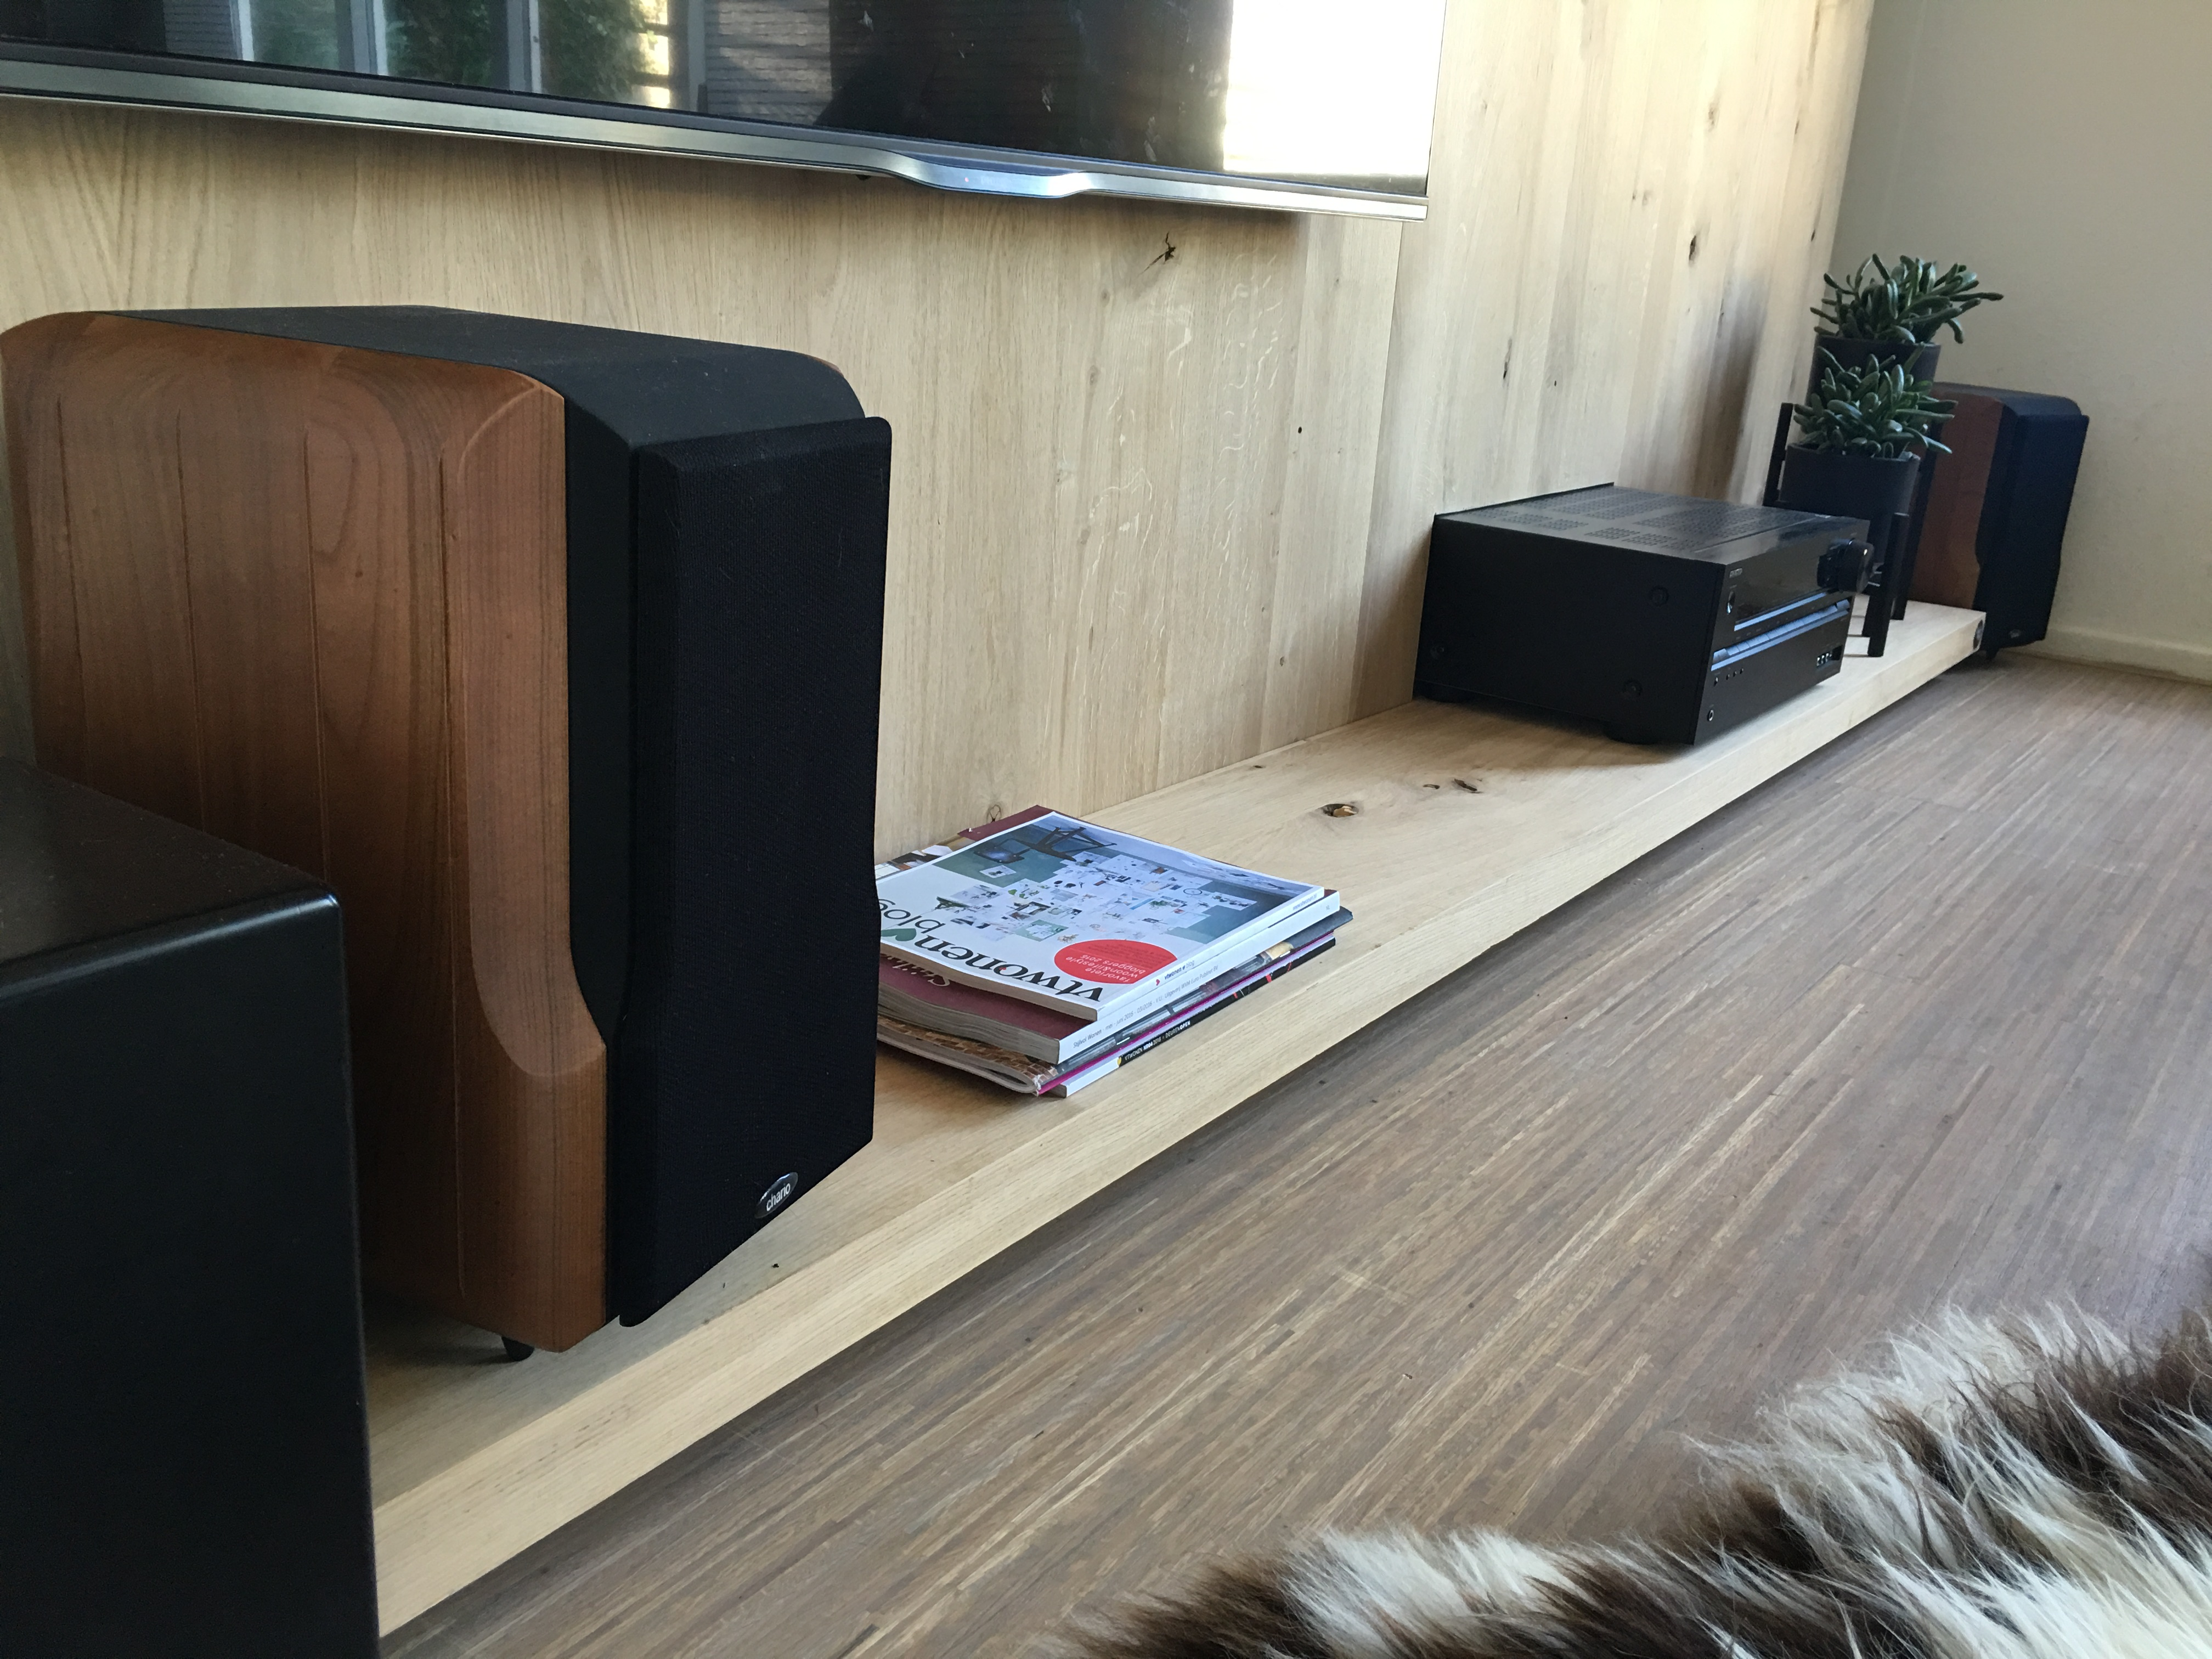 tv media wand awesome cabrini tv stand and floating wall tv panel with led lights in nut brown. Black Bedroom Furniture Sets. Home Design Ideas